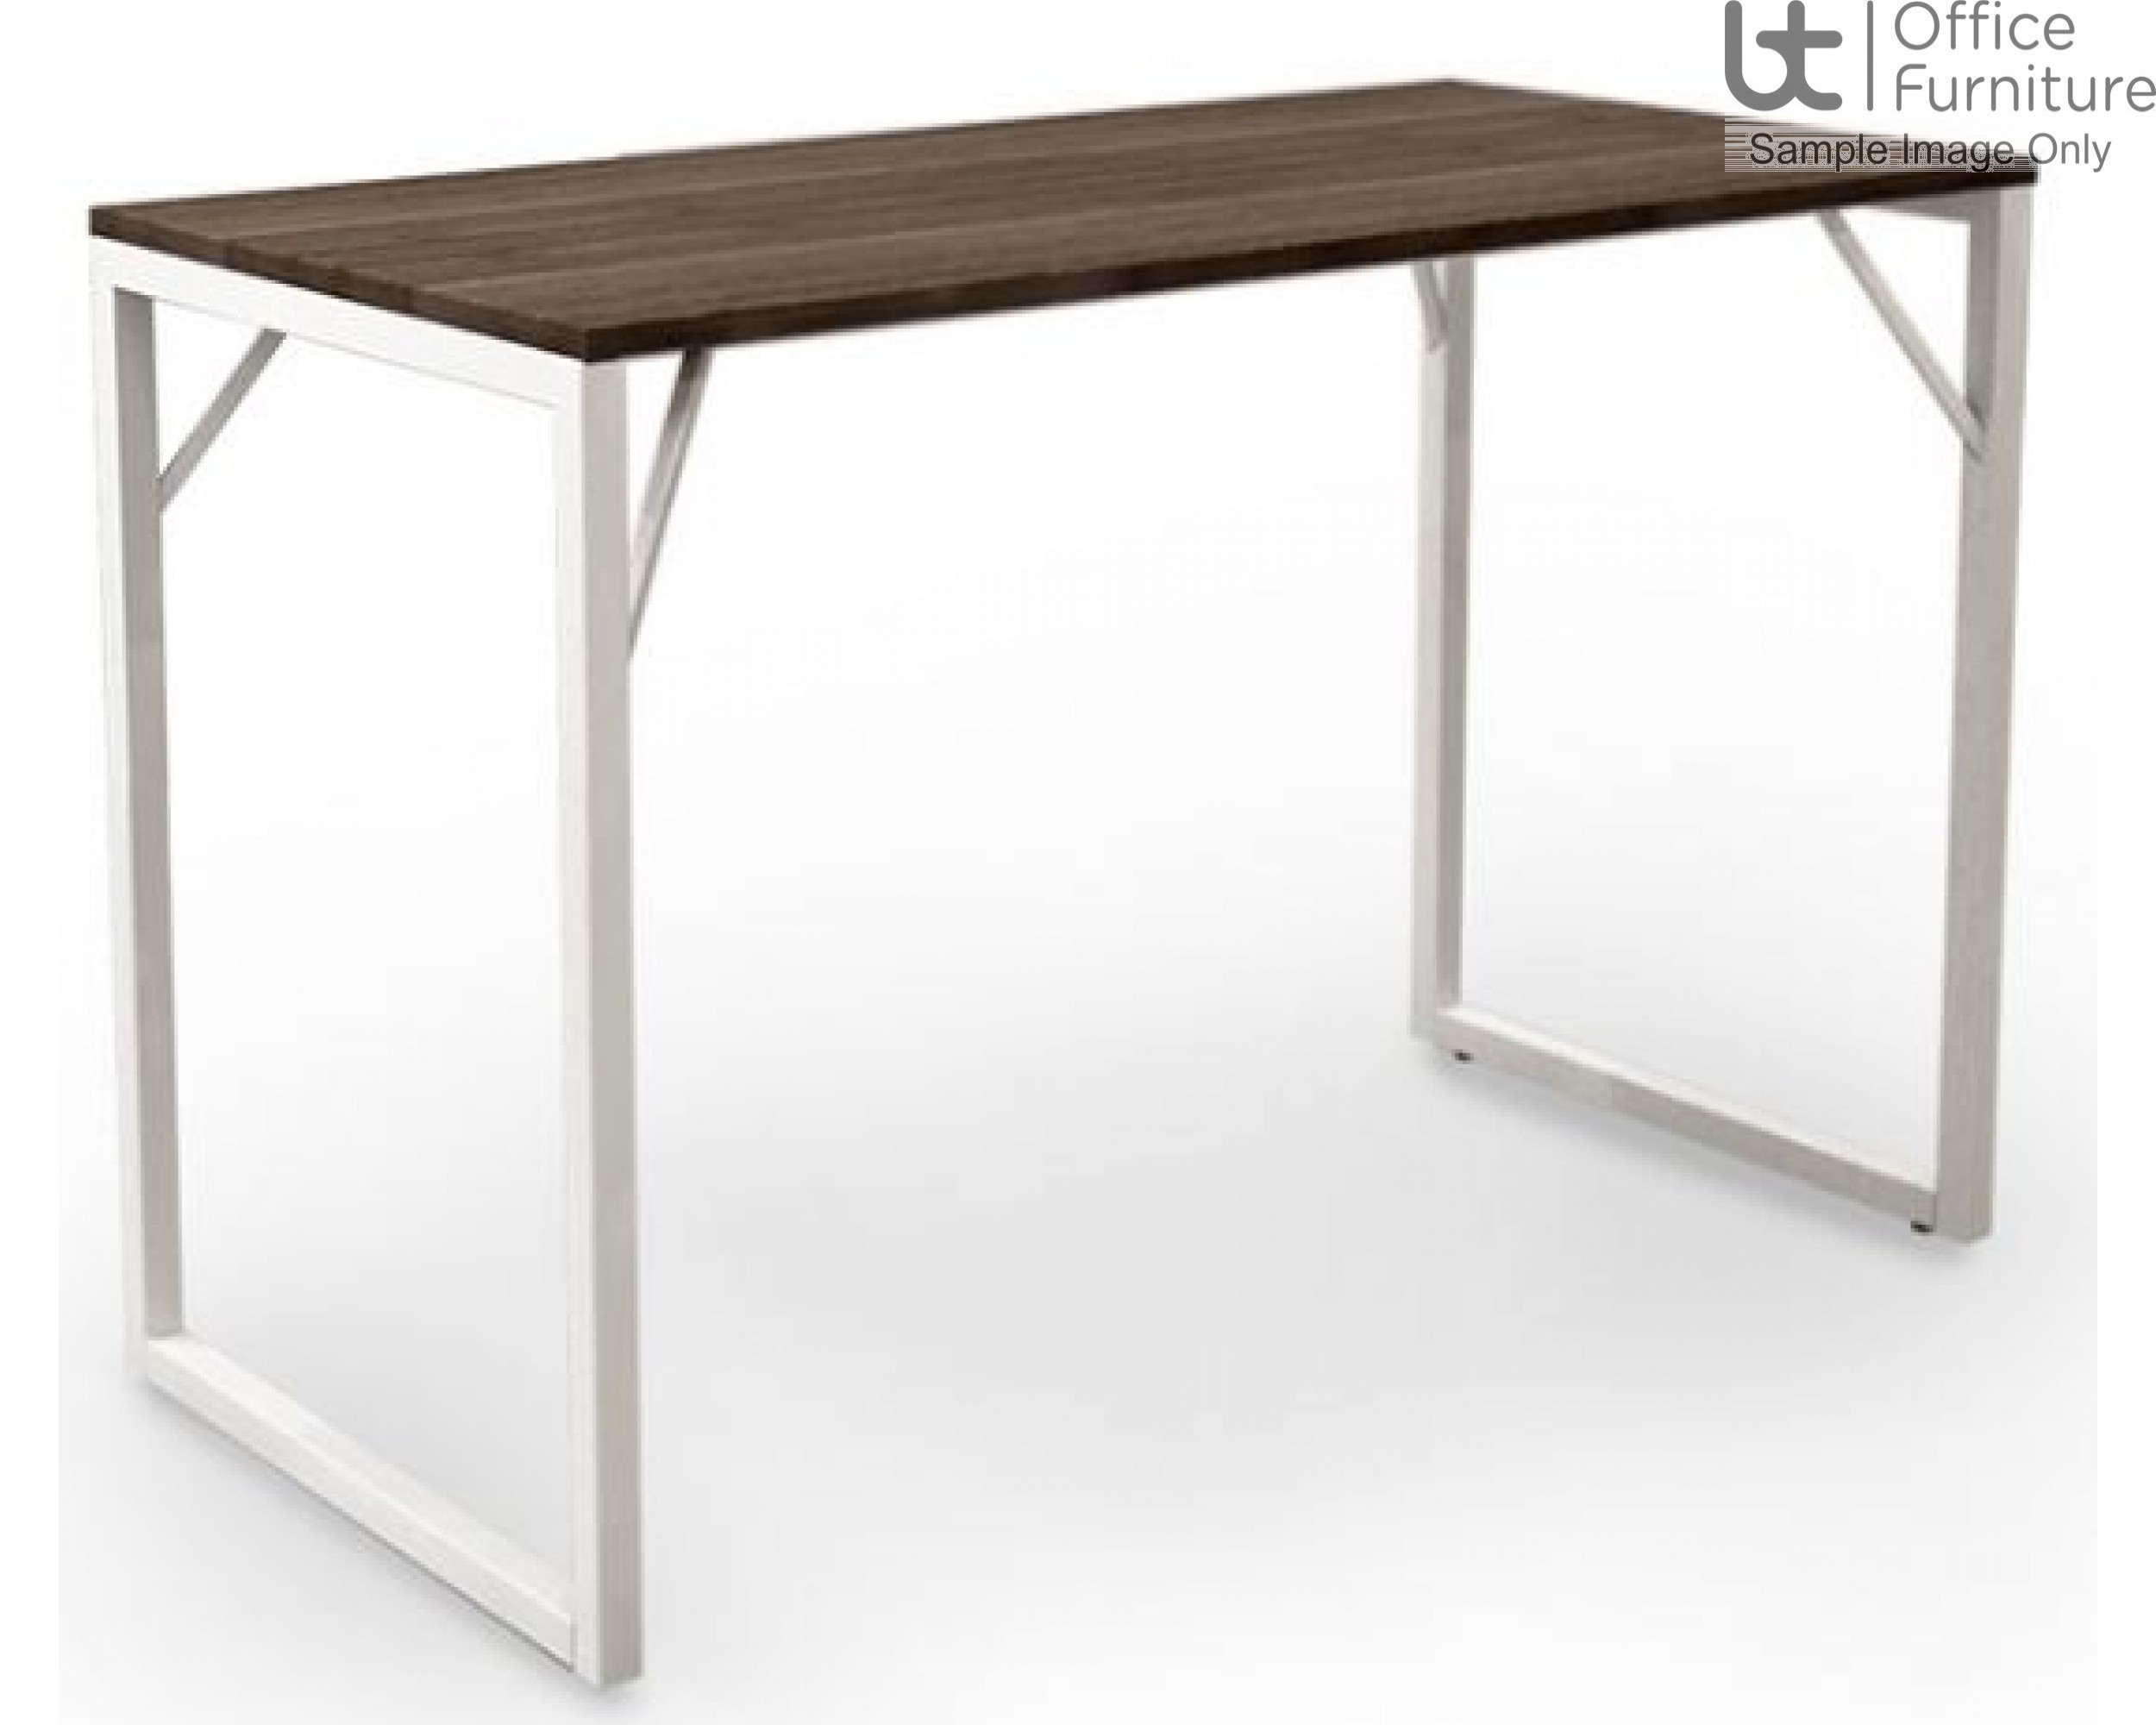 Robust Block Steel Frame High Bench Dining Table W1800 x D800 x H1100mm